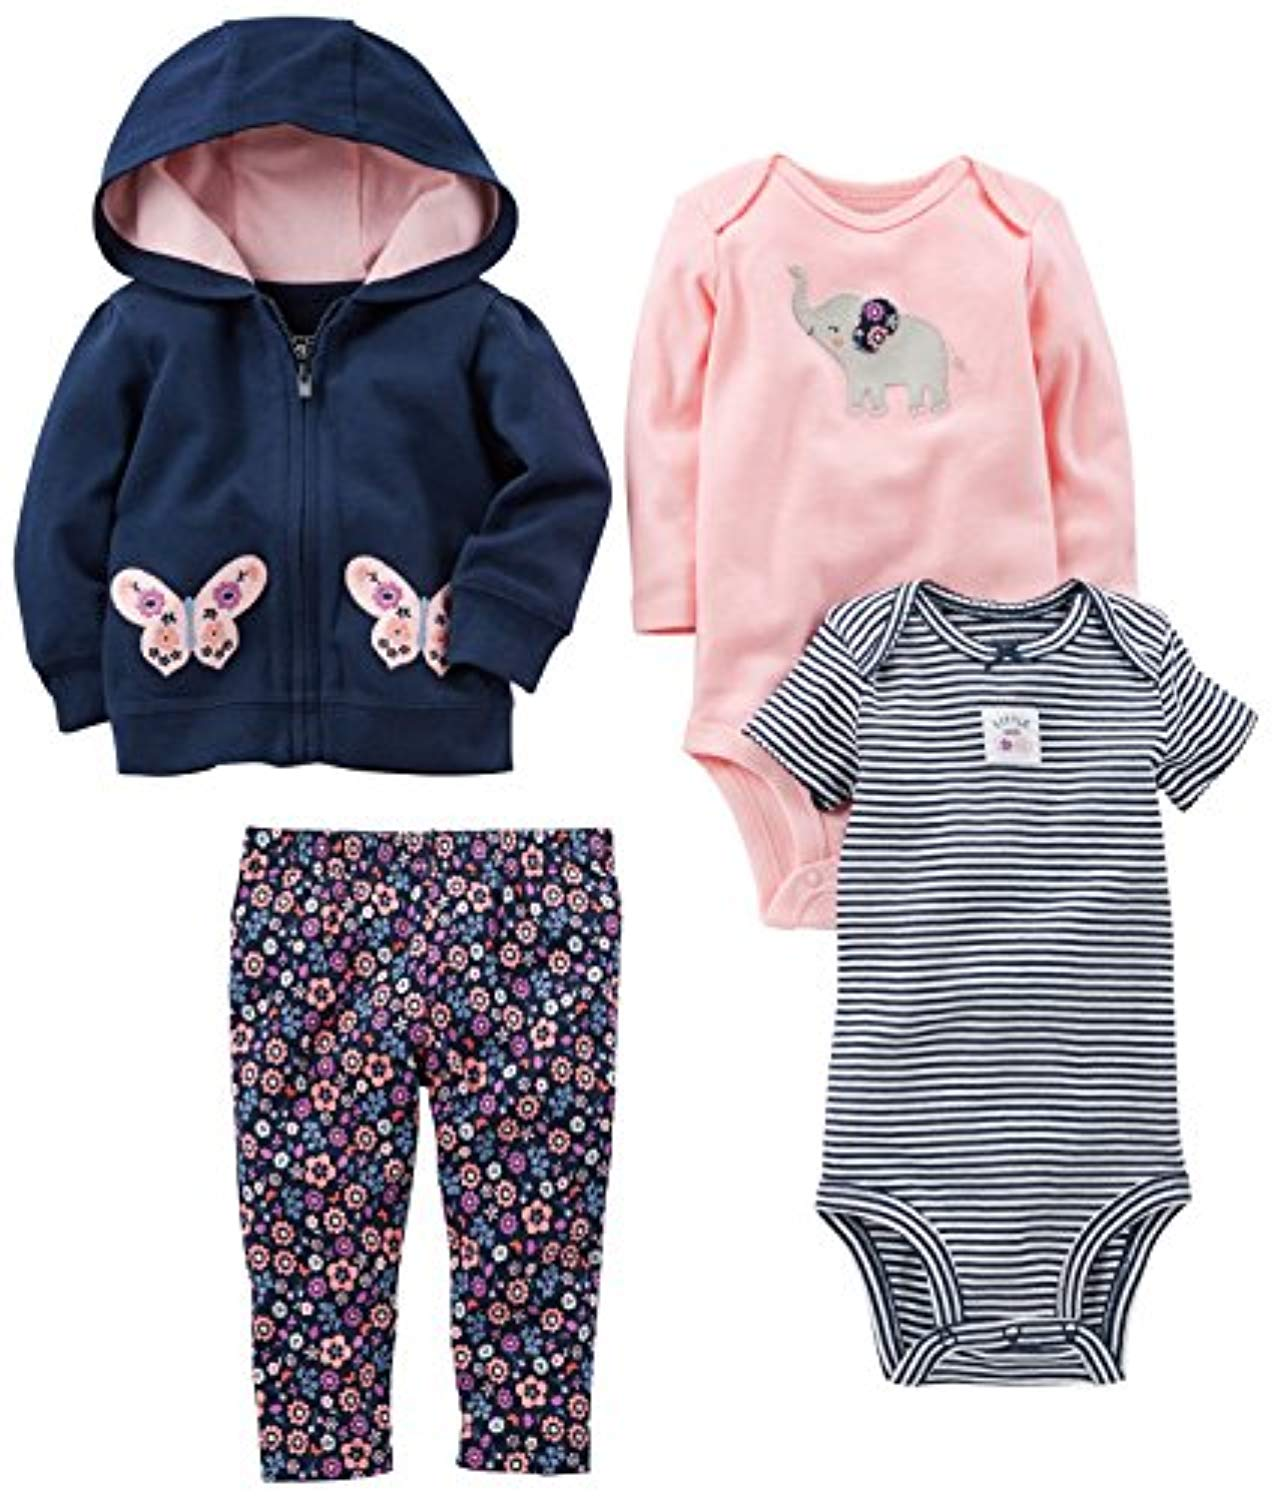 Baby Girls' 4-Piece Little Jacket Set